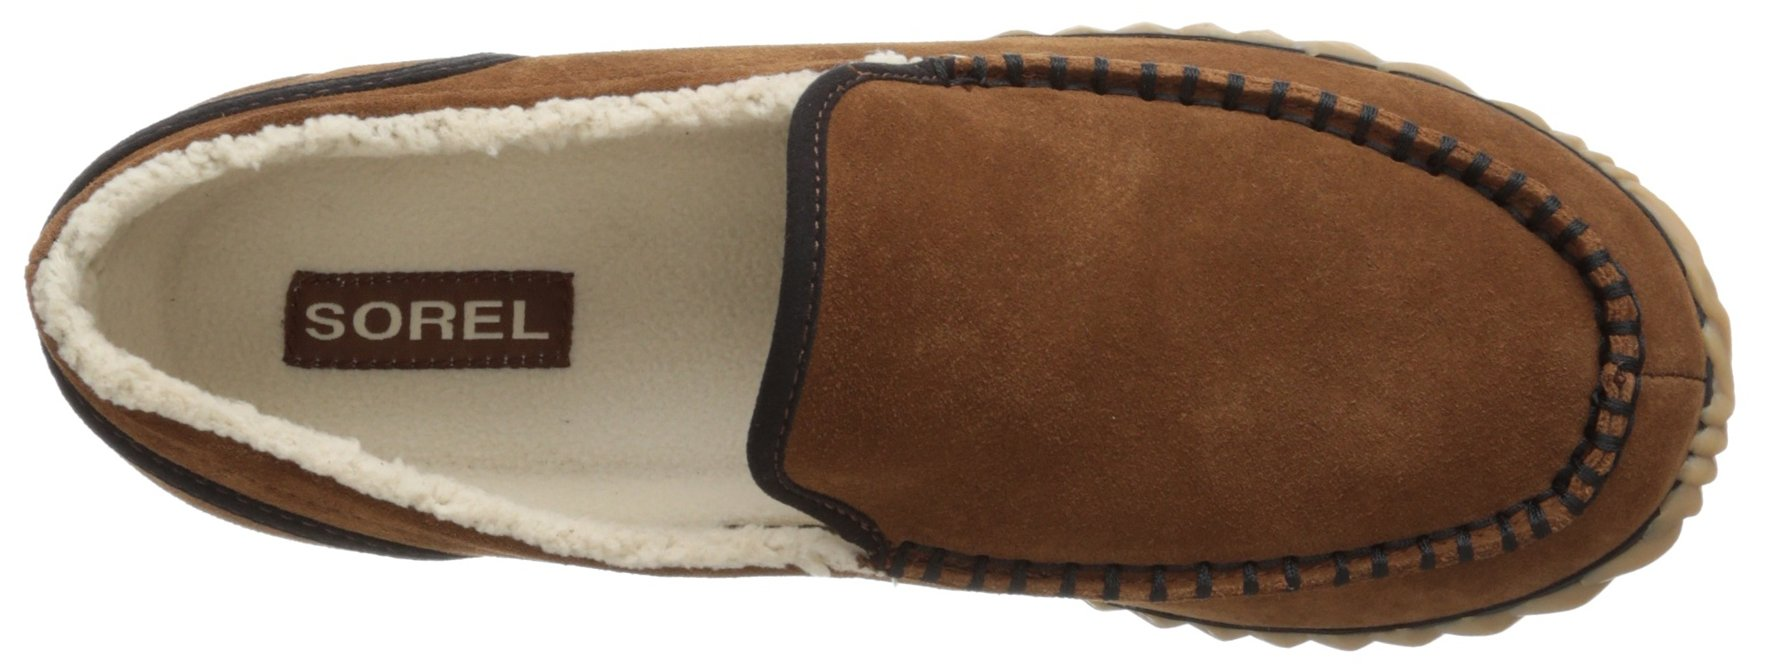 Sorel Men's Dude Moc,Grizzly Bear,7.5 M US by SOREL (Image #8)